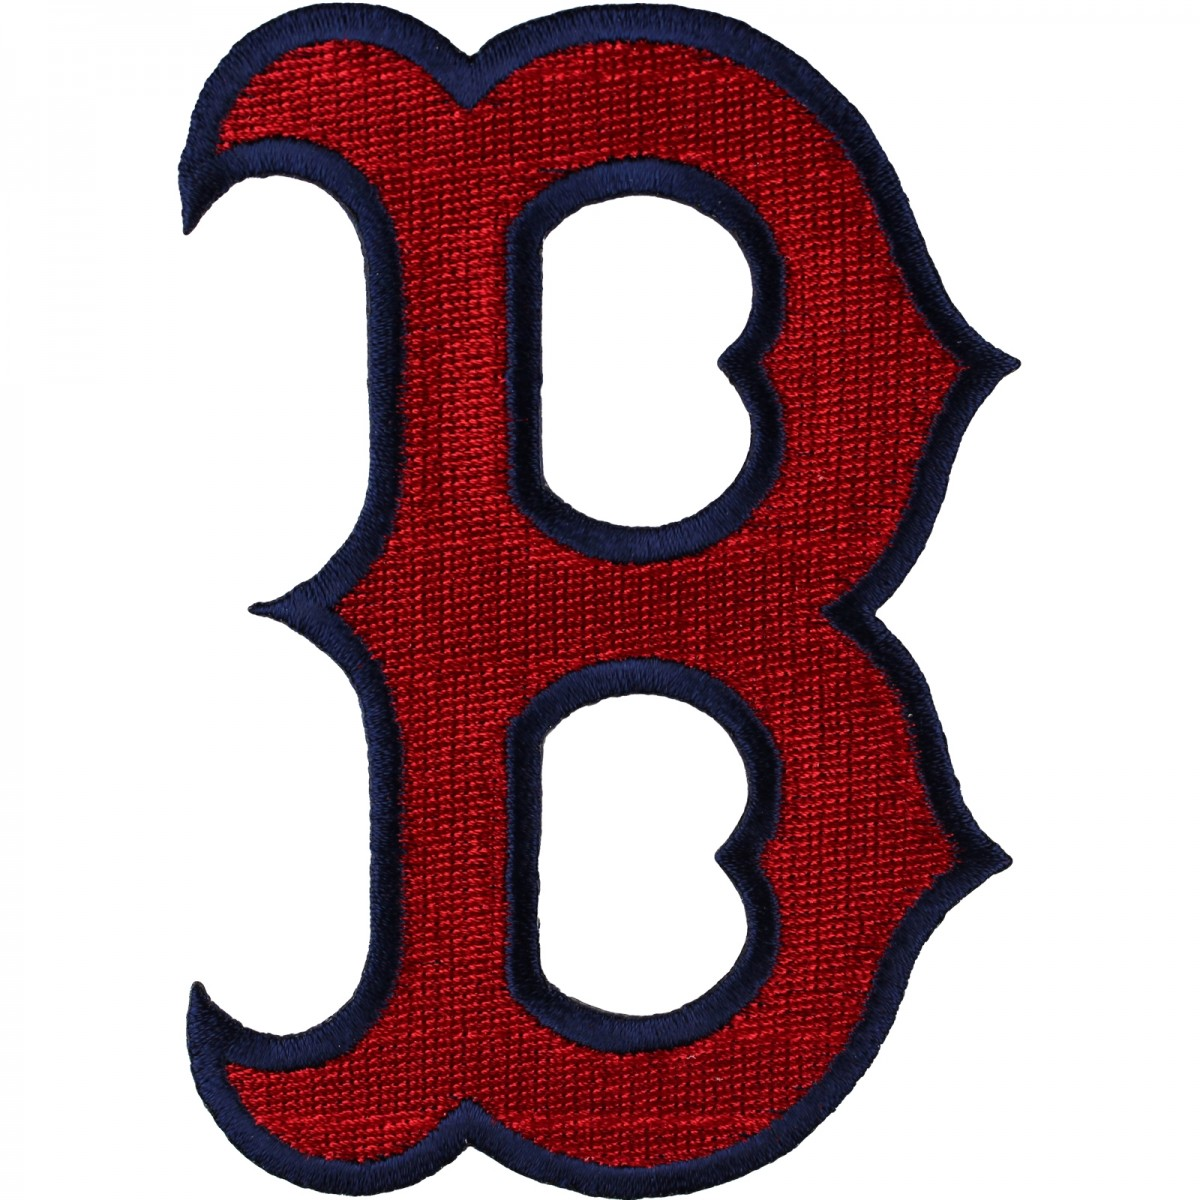 Boston Red Sox Secondary \'B\' Logo Patch.